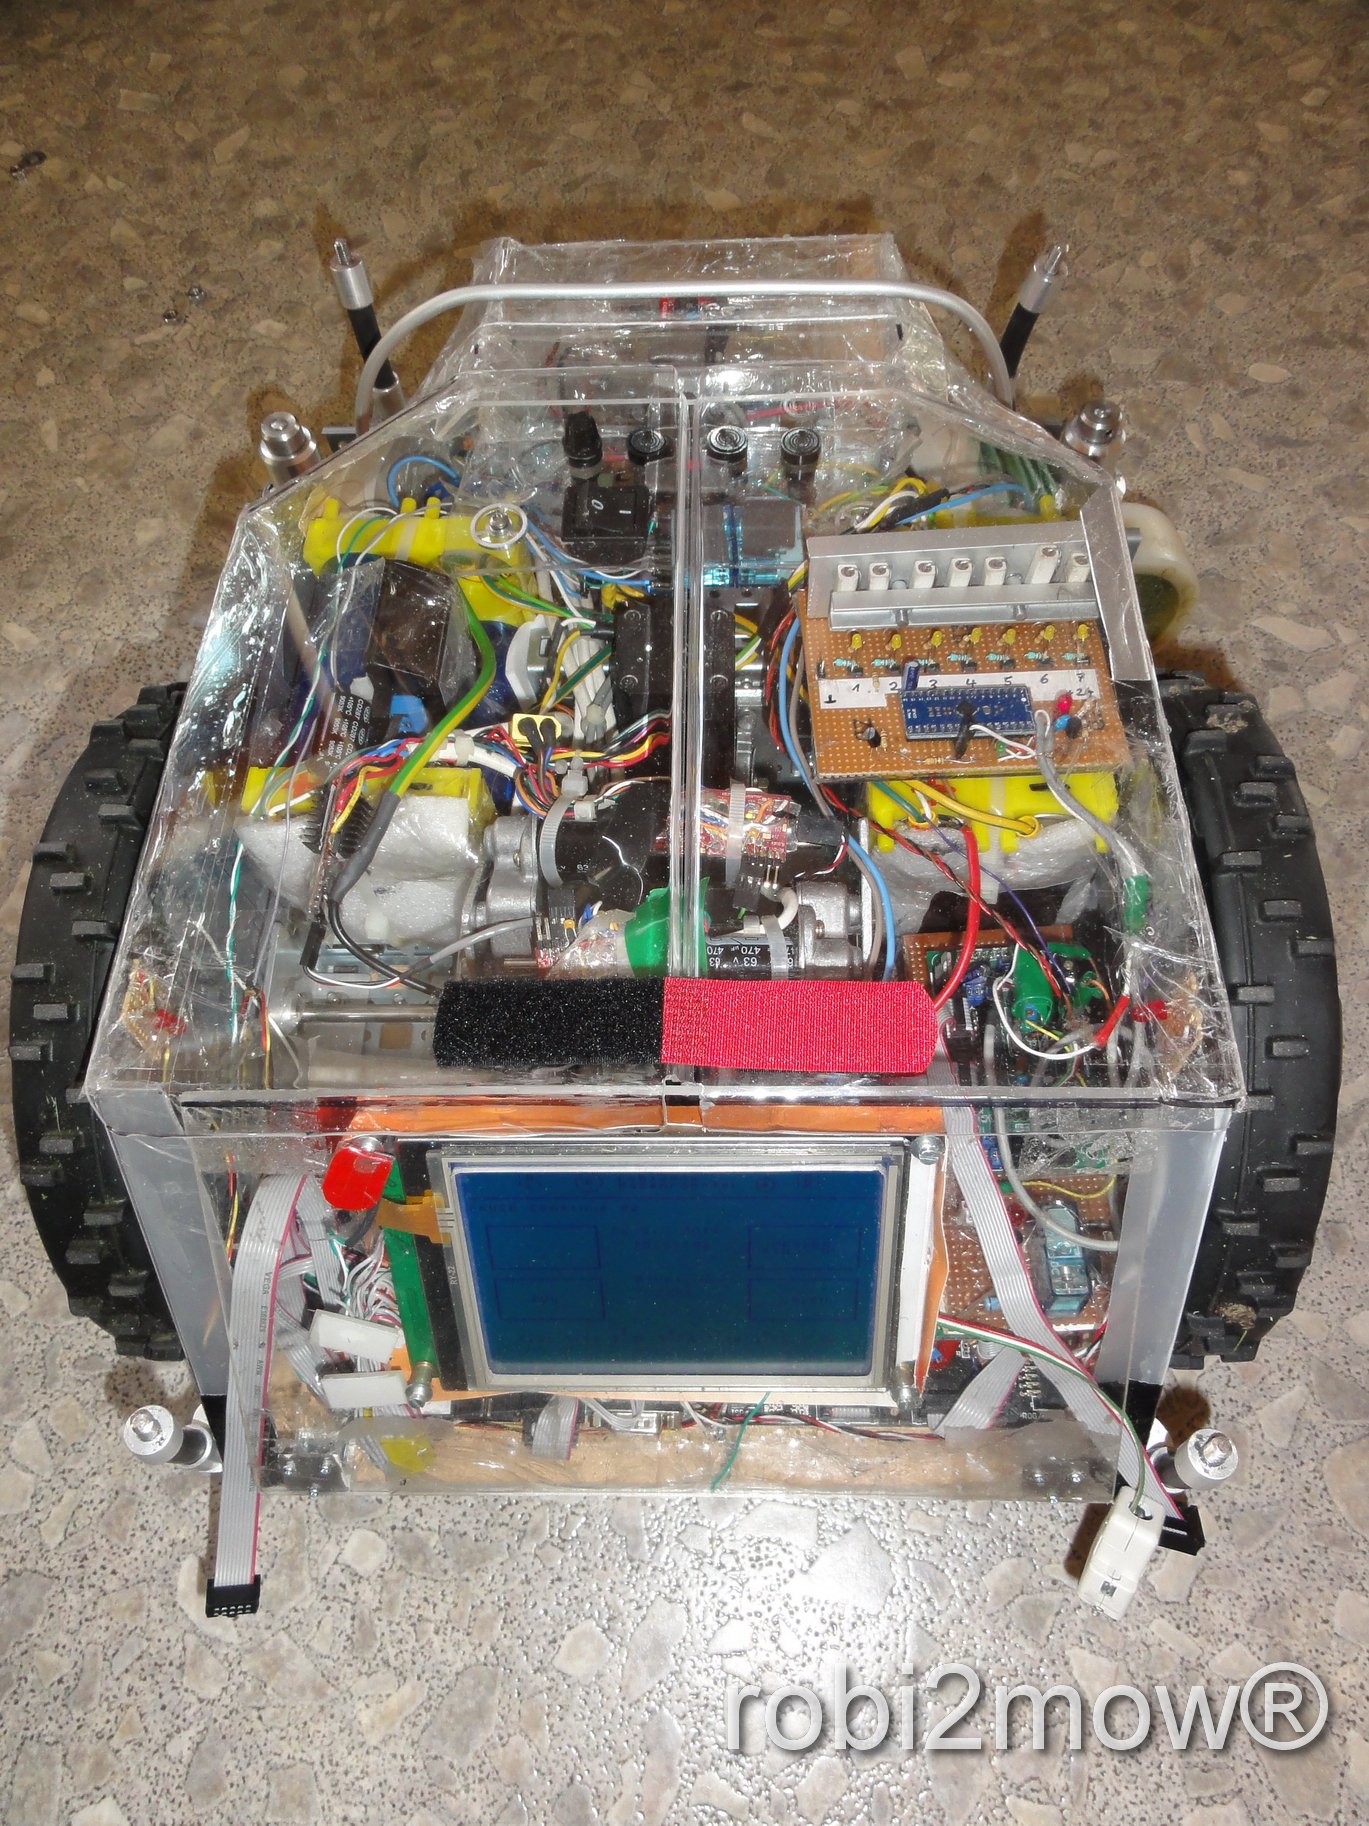 Chassis - robi2mow.at